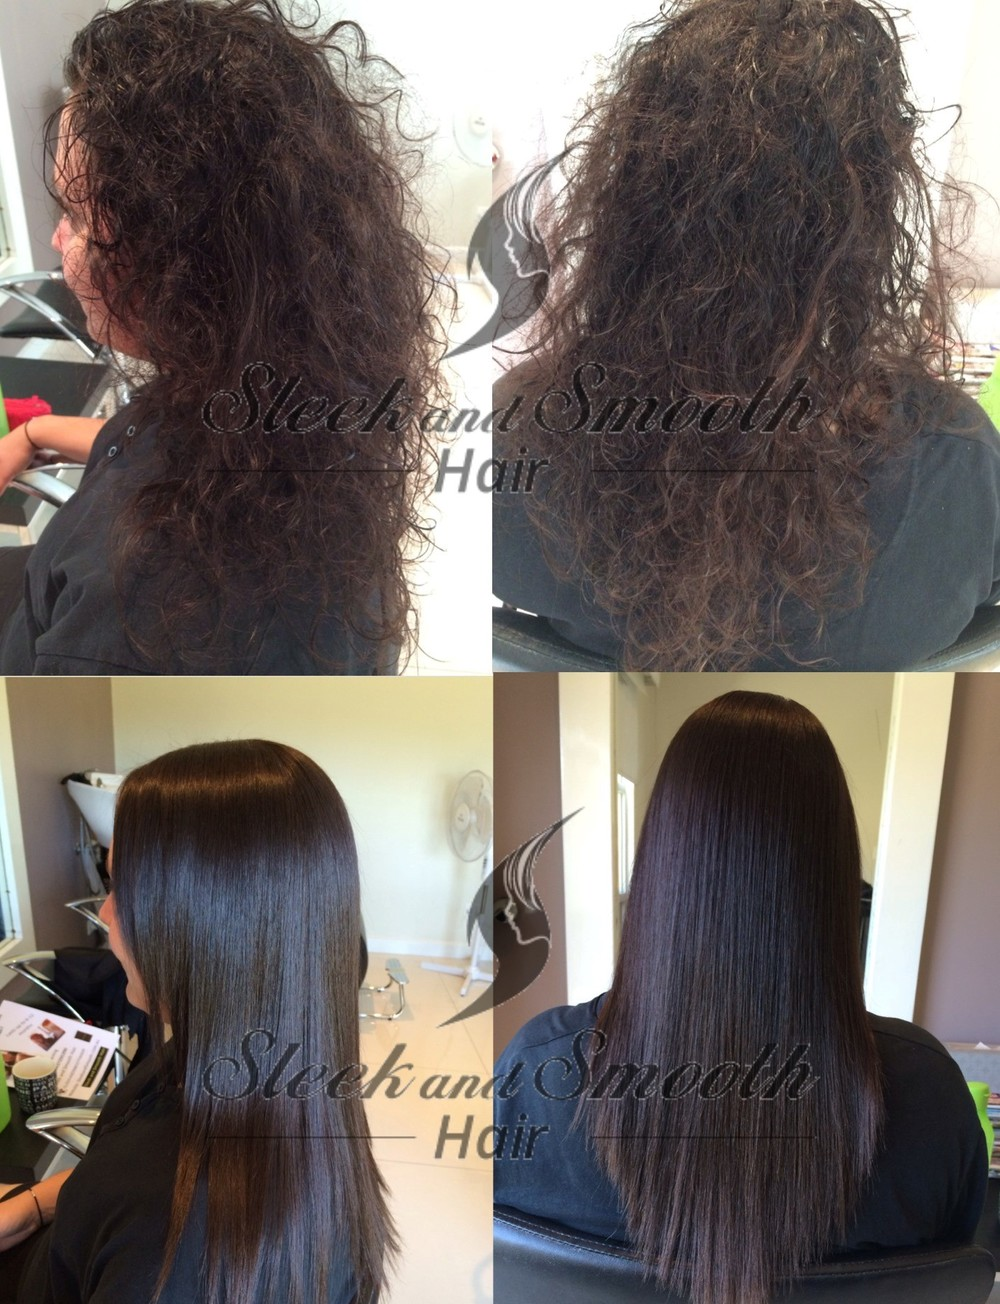 Permanent japanese hair straightening sleek and smooth hair img0072eg solutioingenieria Images